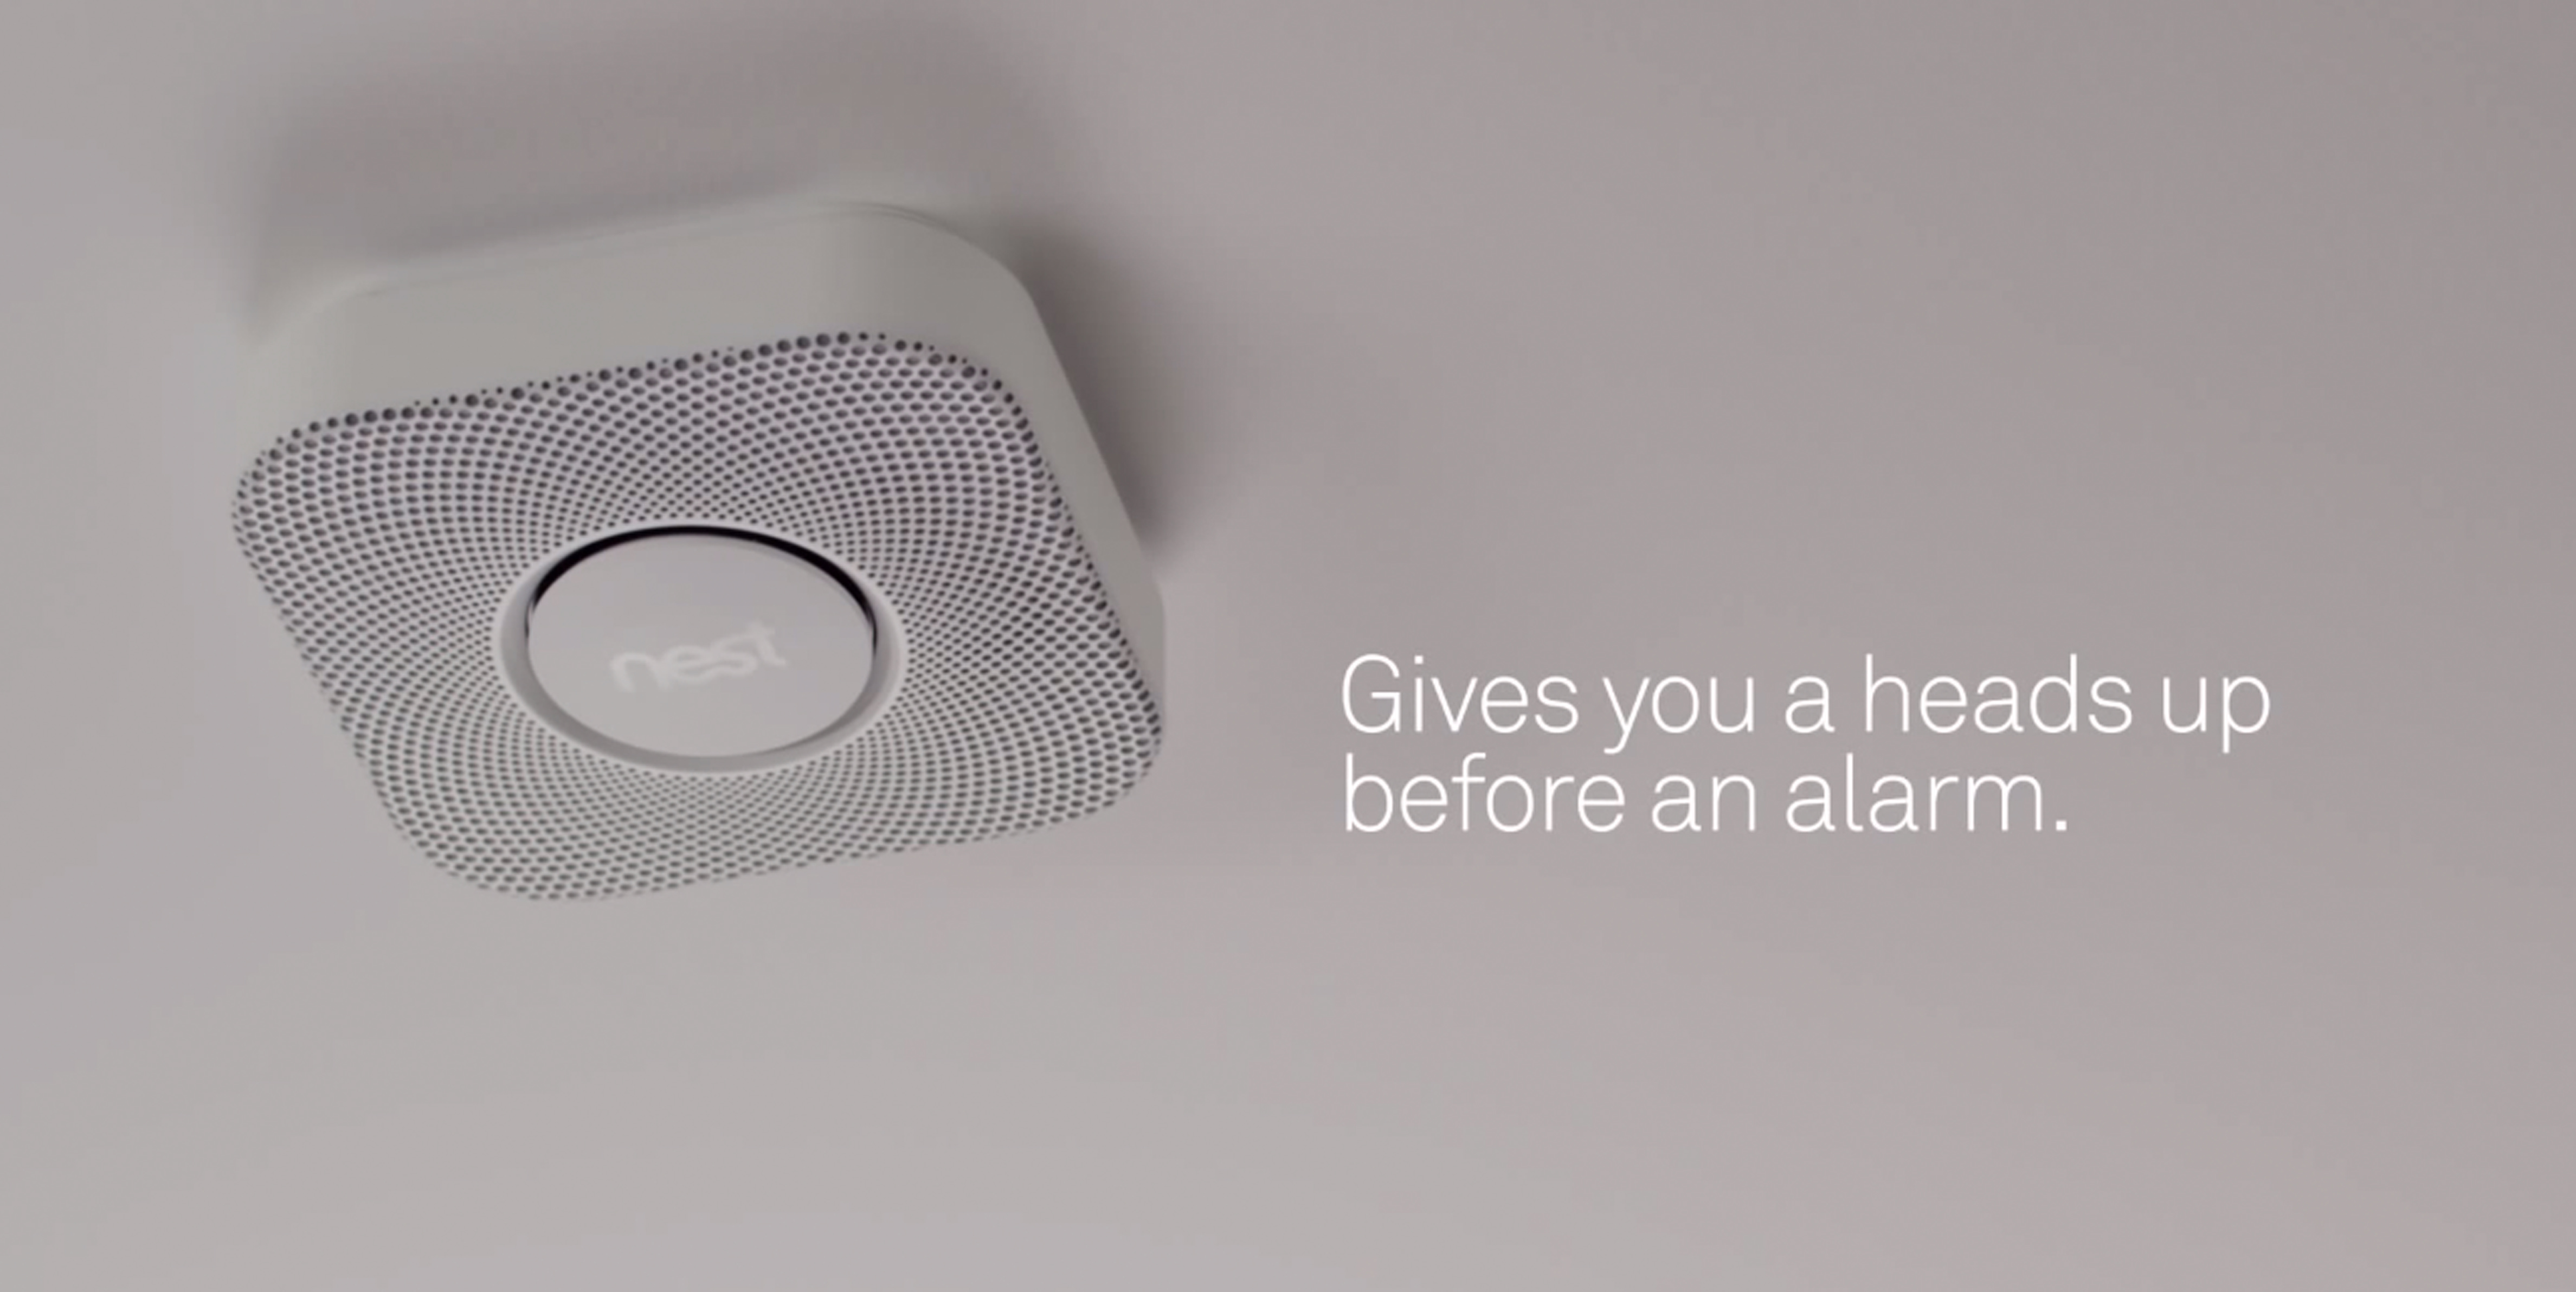 Nest-Protect-Heads-Up1